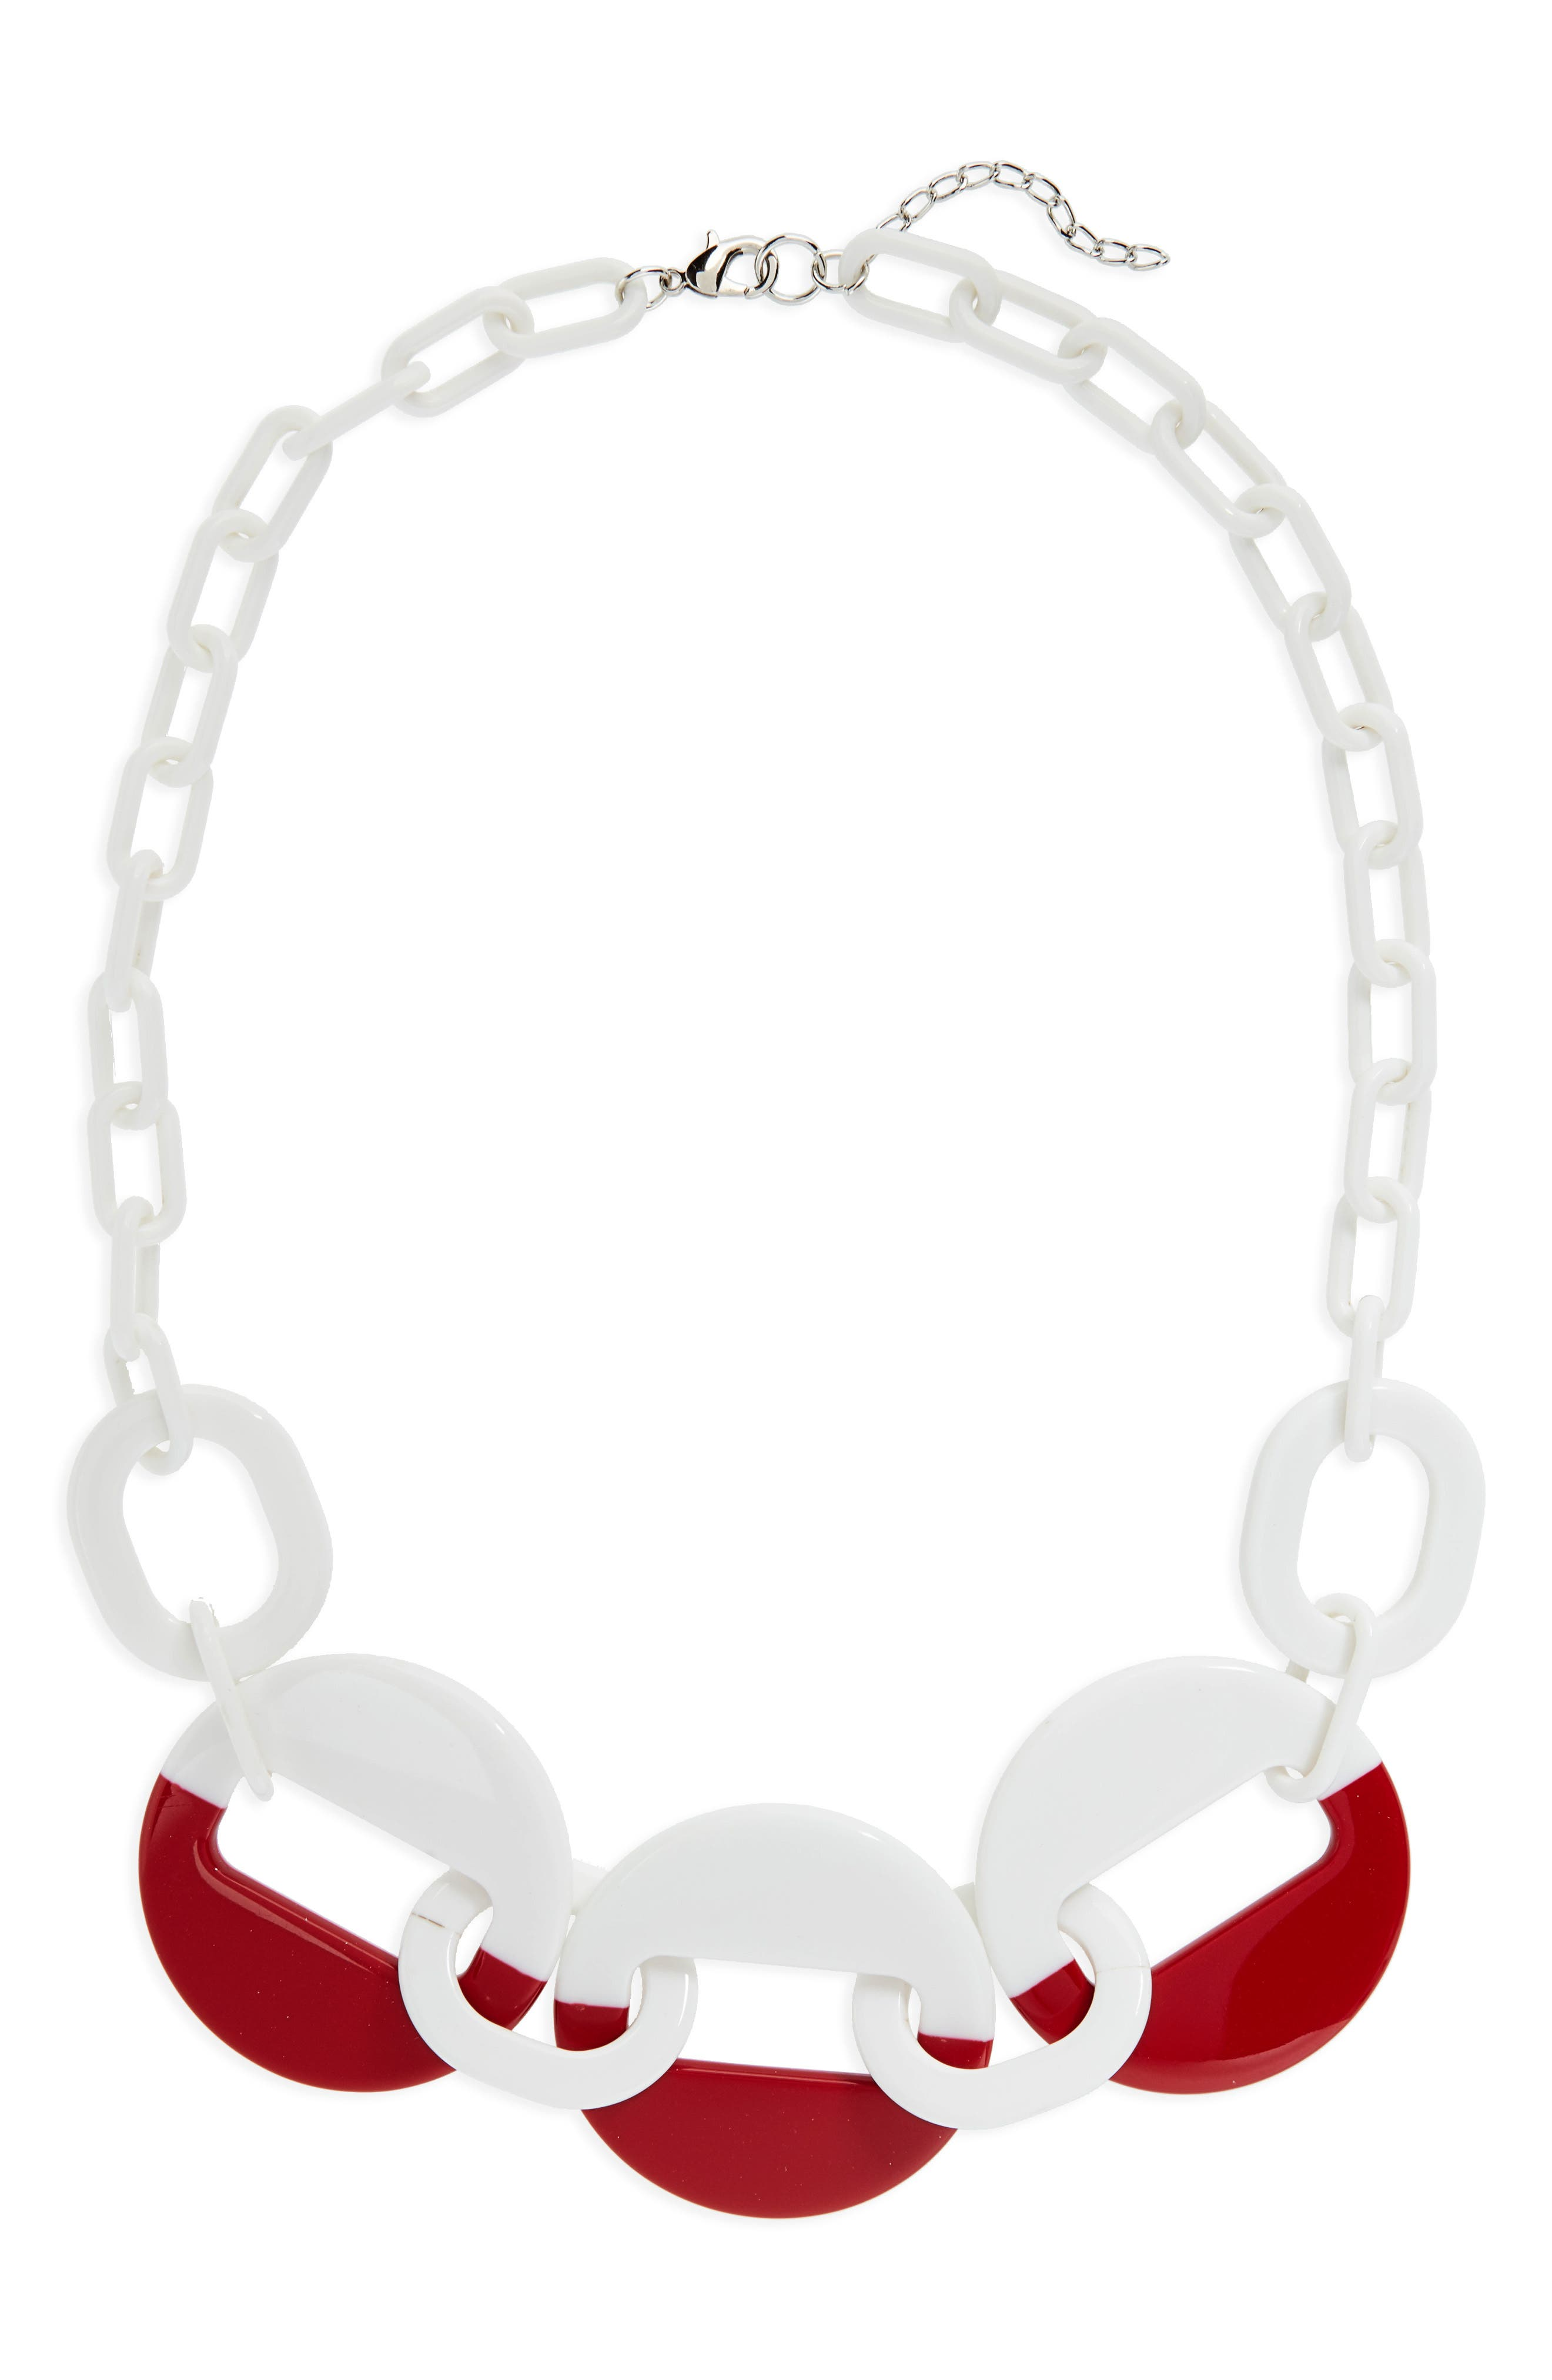 Resin Link Necklace,                         Main,                         color, White/ Red